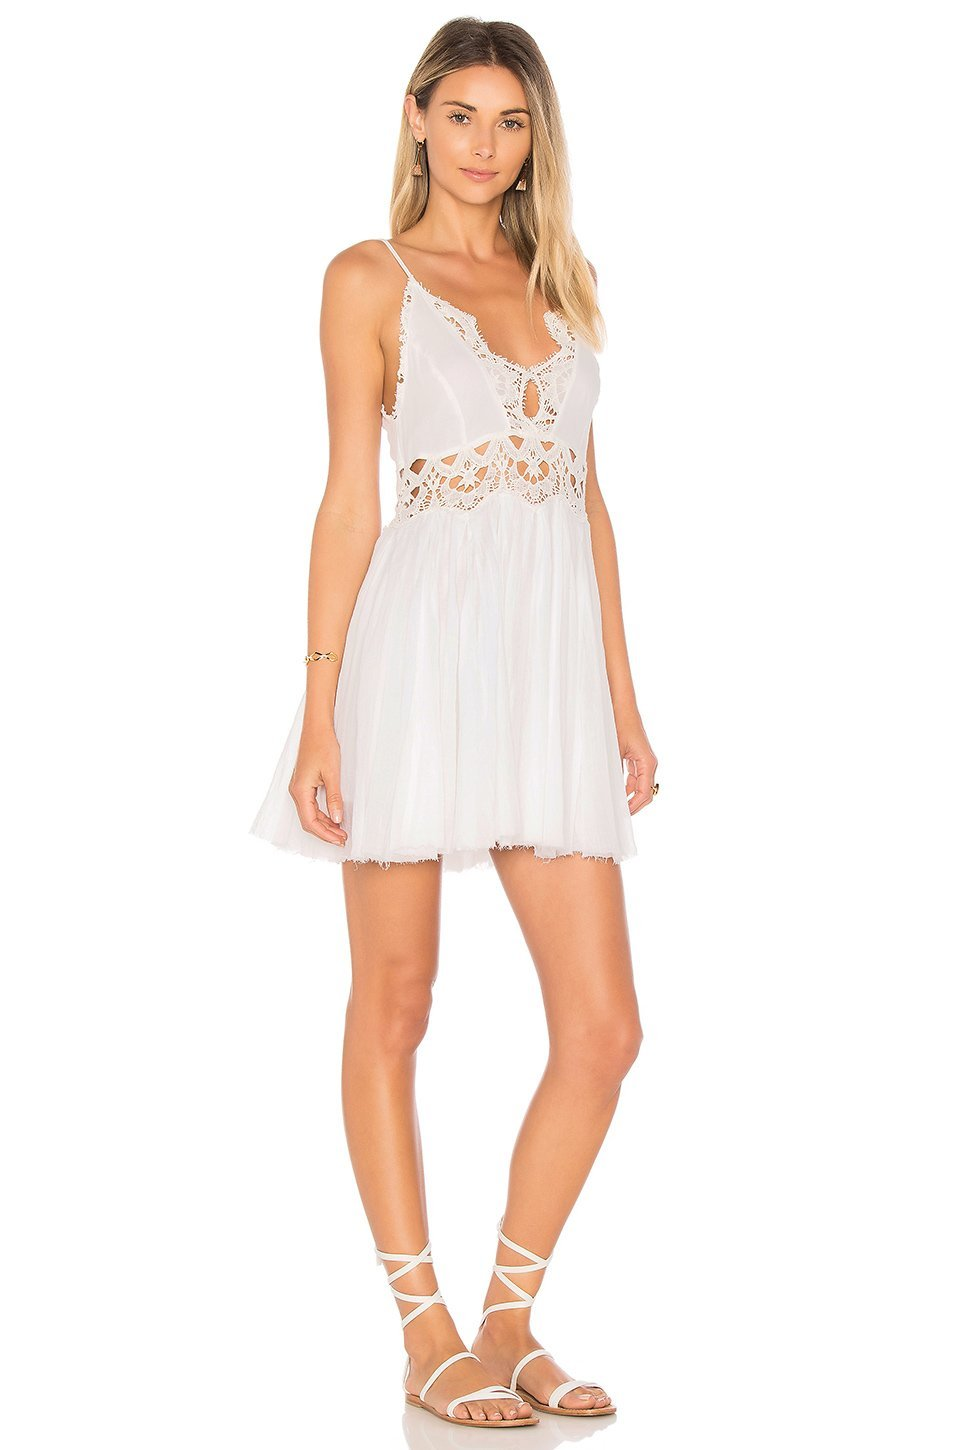 Woman wearing a dress rental from Free People called Ilektra Mini Dress